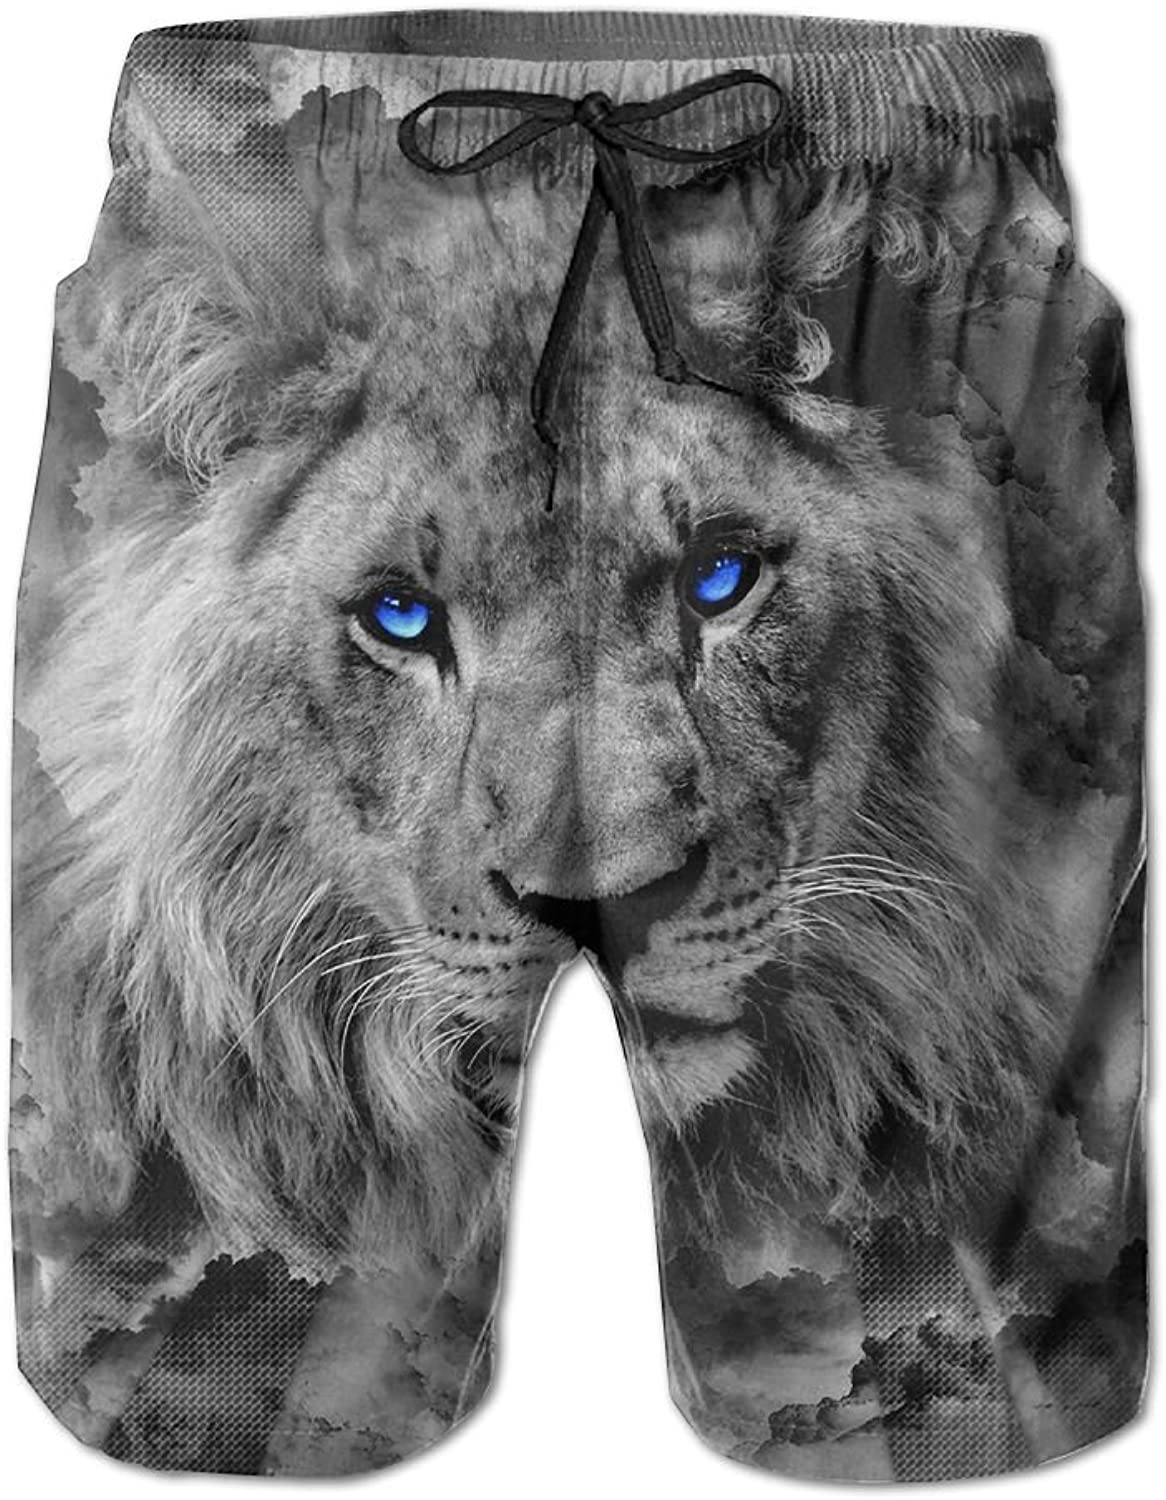 - Tydo Tydo Tydo Quick Dry Beach Shorts Surreal Lion Print Swim Trunks Surf Board Pants With Pockets For Men bbd890